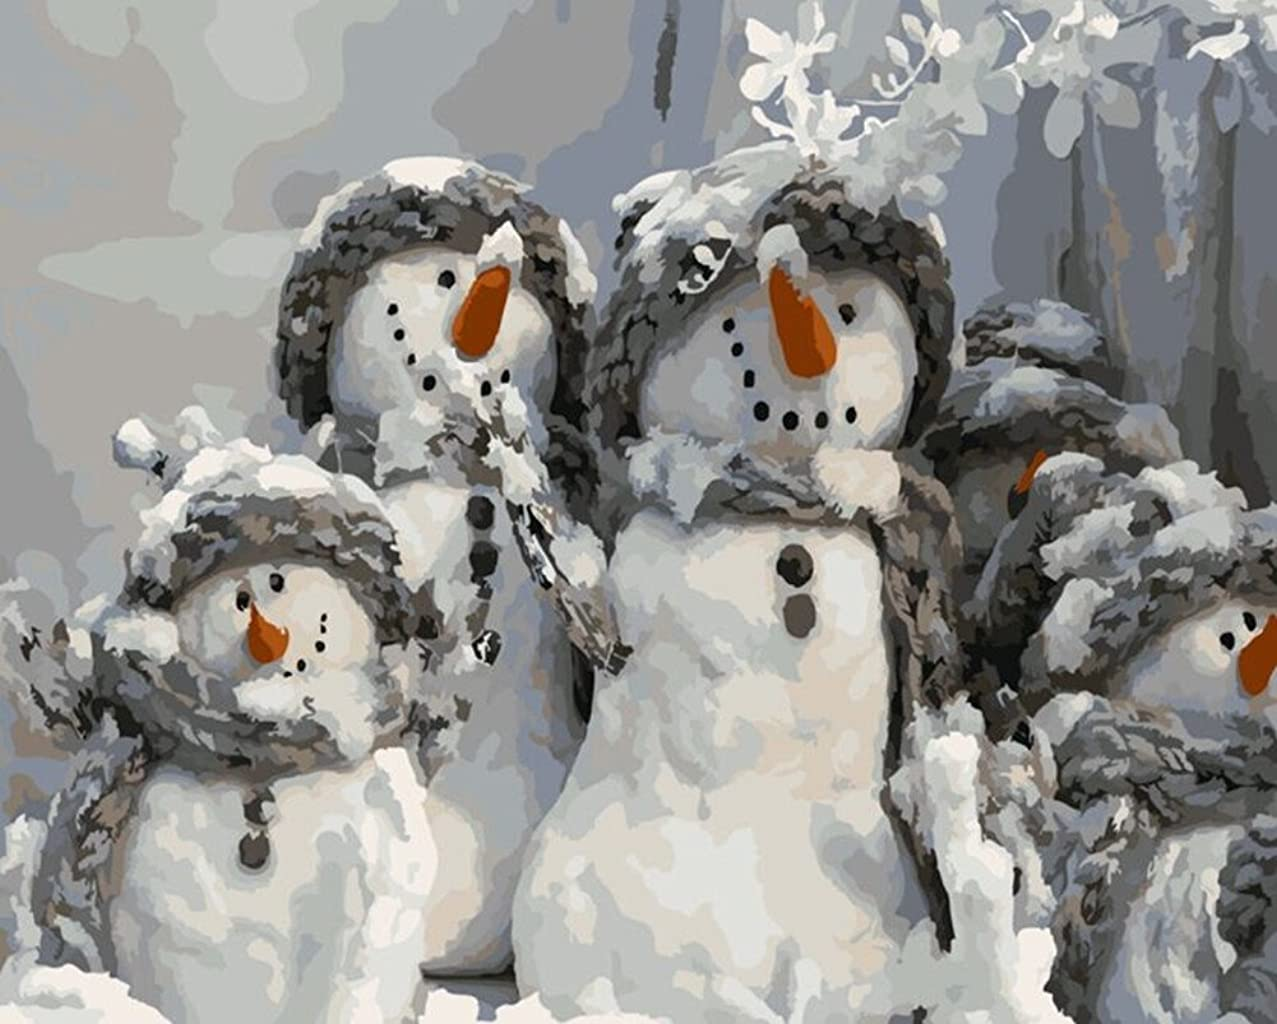 YEESAM ART DIY Paint by Numbers for Adults Beginner Kids, Christmas Snowman Family 16x20 inch Linen Canvas Acrylic Stress Less Number Painting Gifts